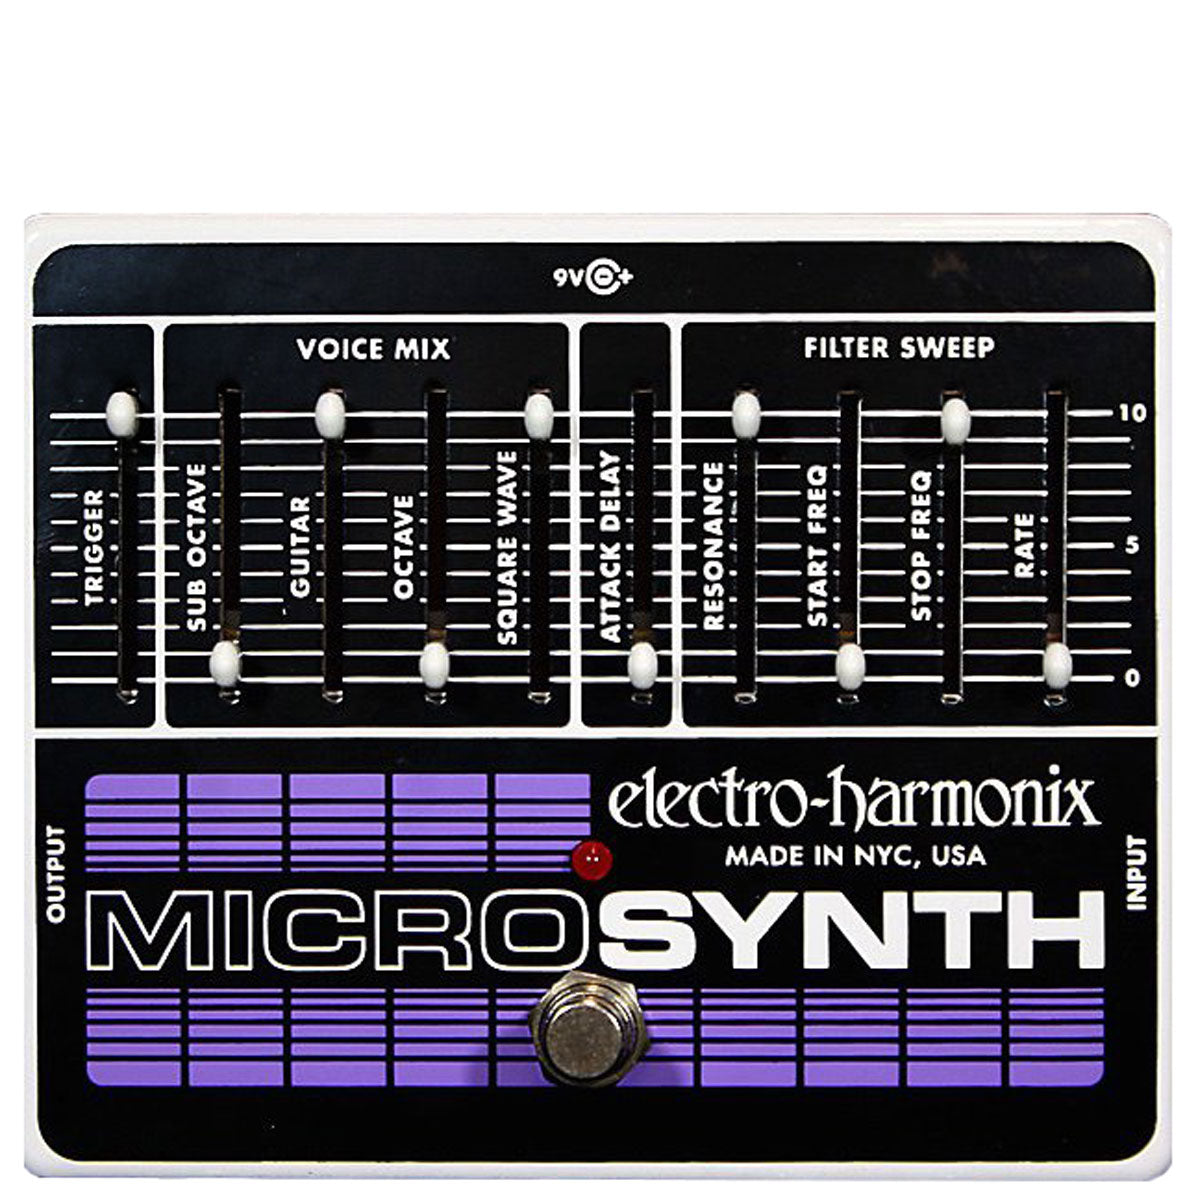 Electro Harmonix - Microsynth - Analog Guitar Synthesizer (PSU Included) | Lucky Fret Music Co.